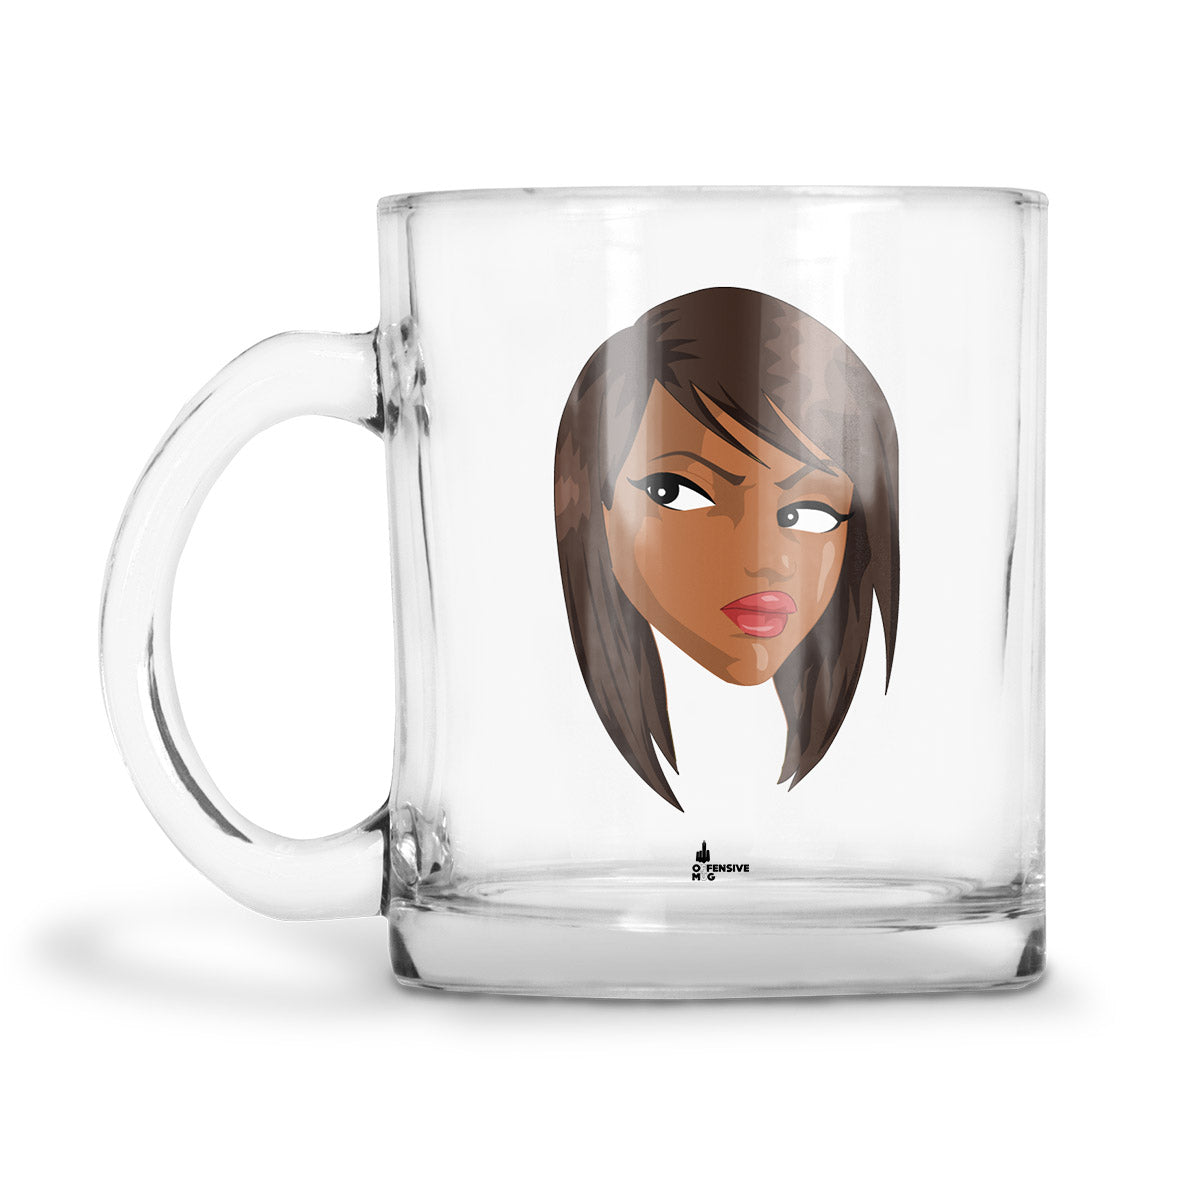 Kia Glass Mug - Offensive Mug